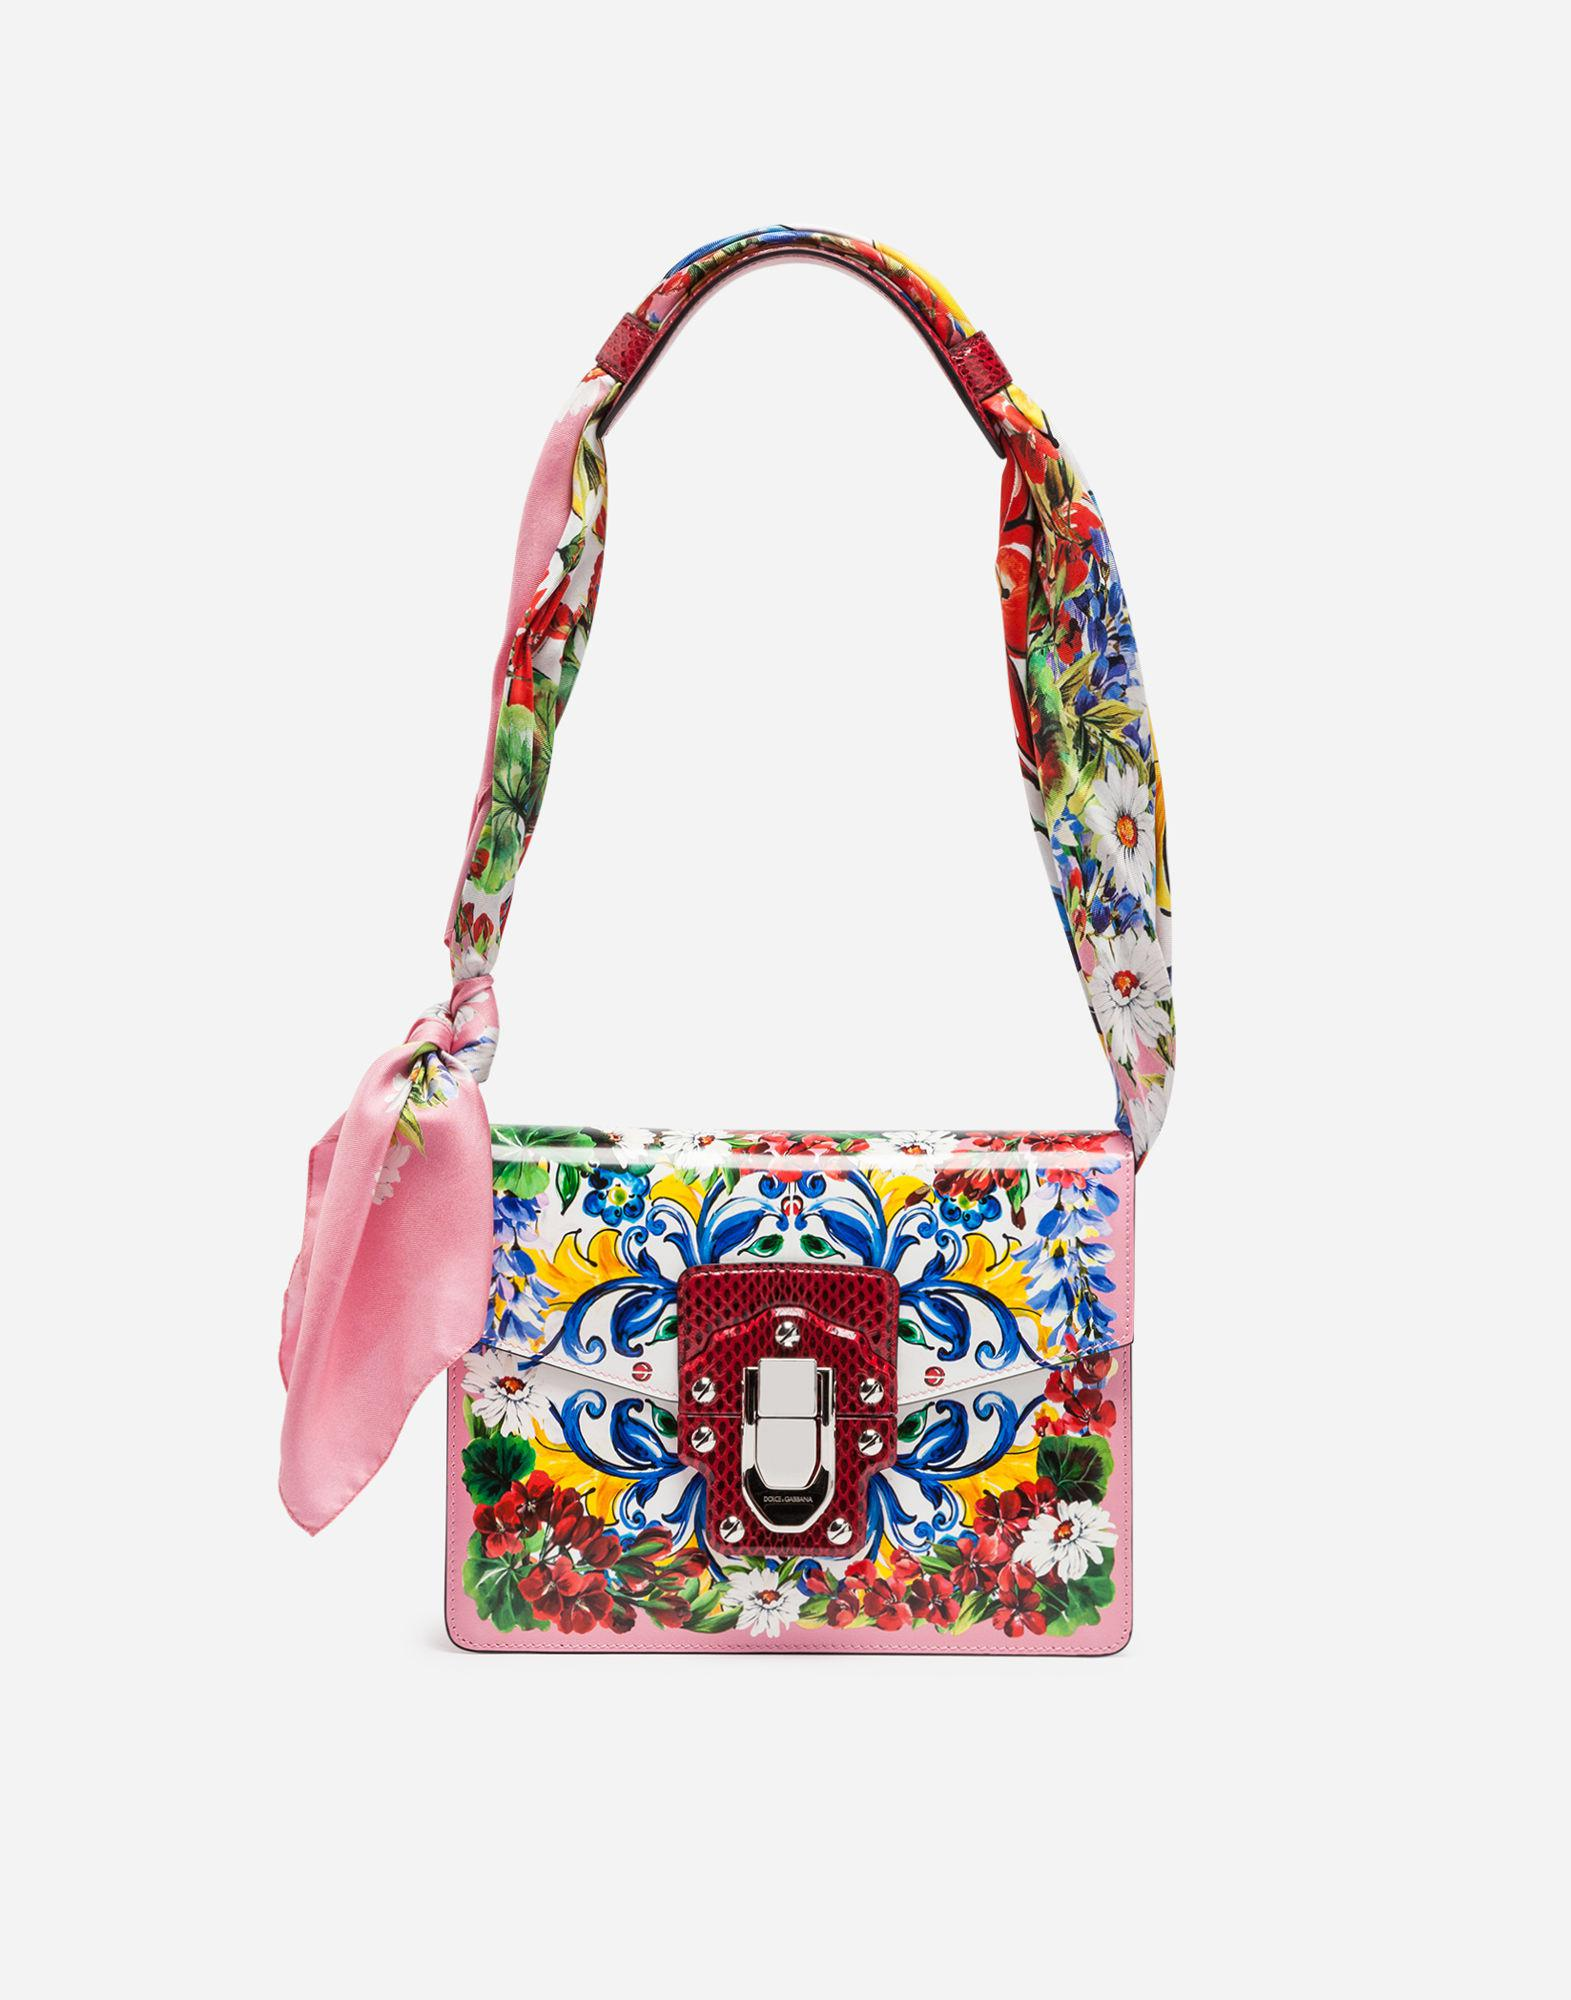 c5792da3ca85 Lyst - Dolce   Gabbana Printed Leather And Ayers Lucia Shoulder Bag